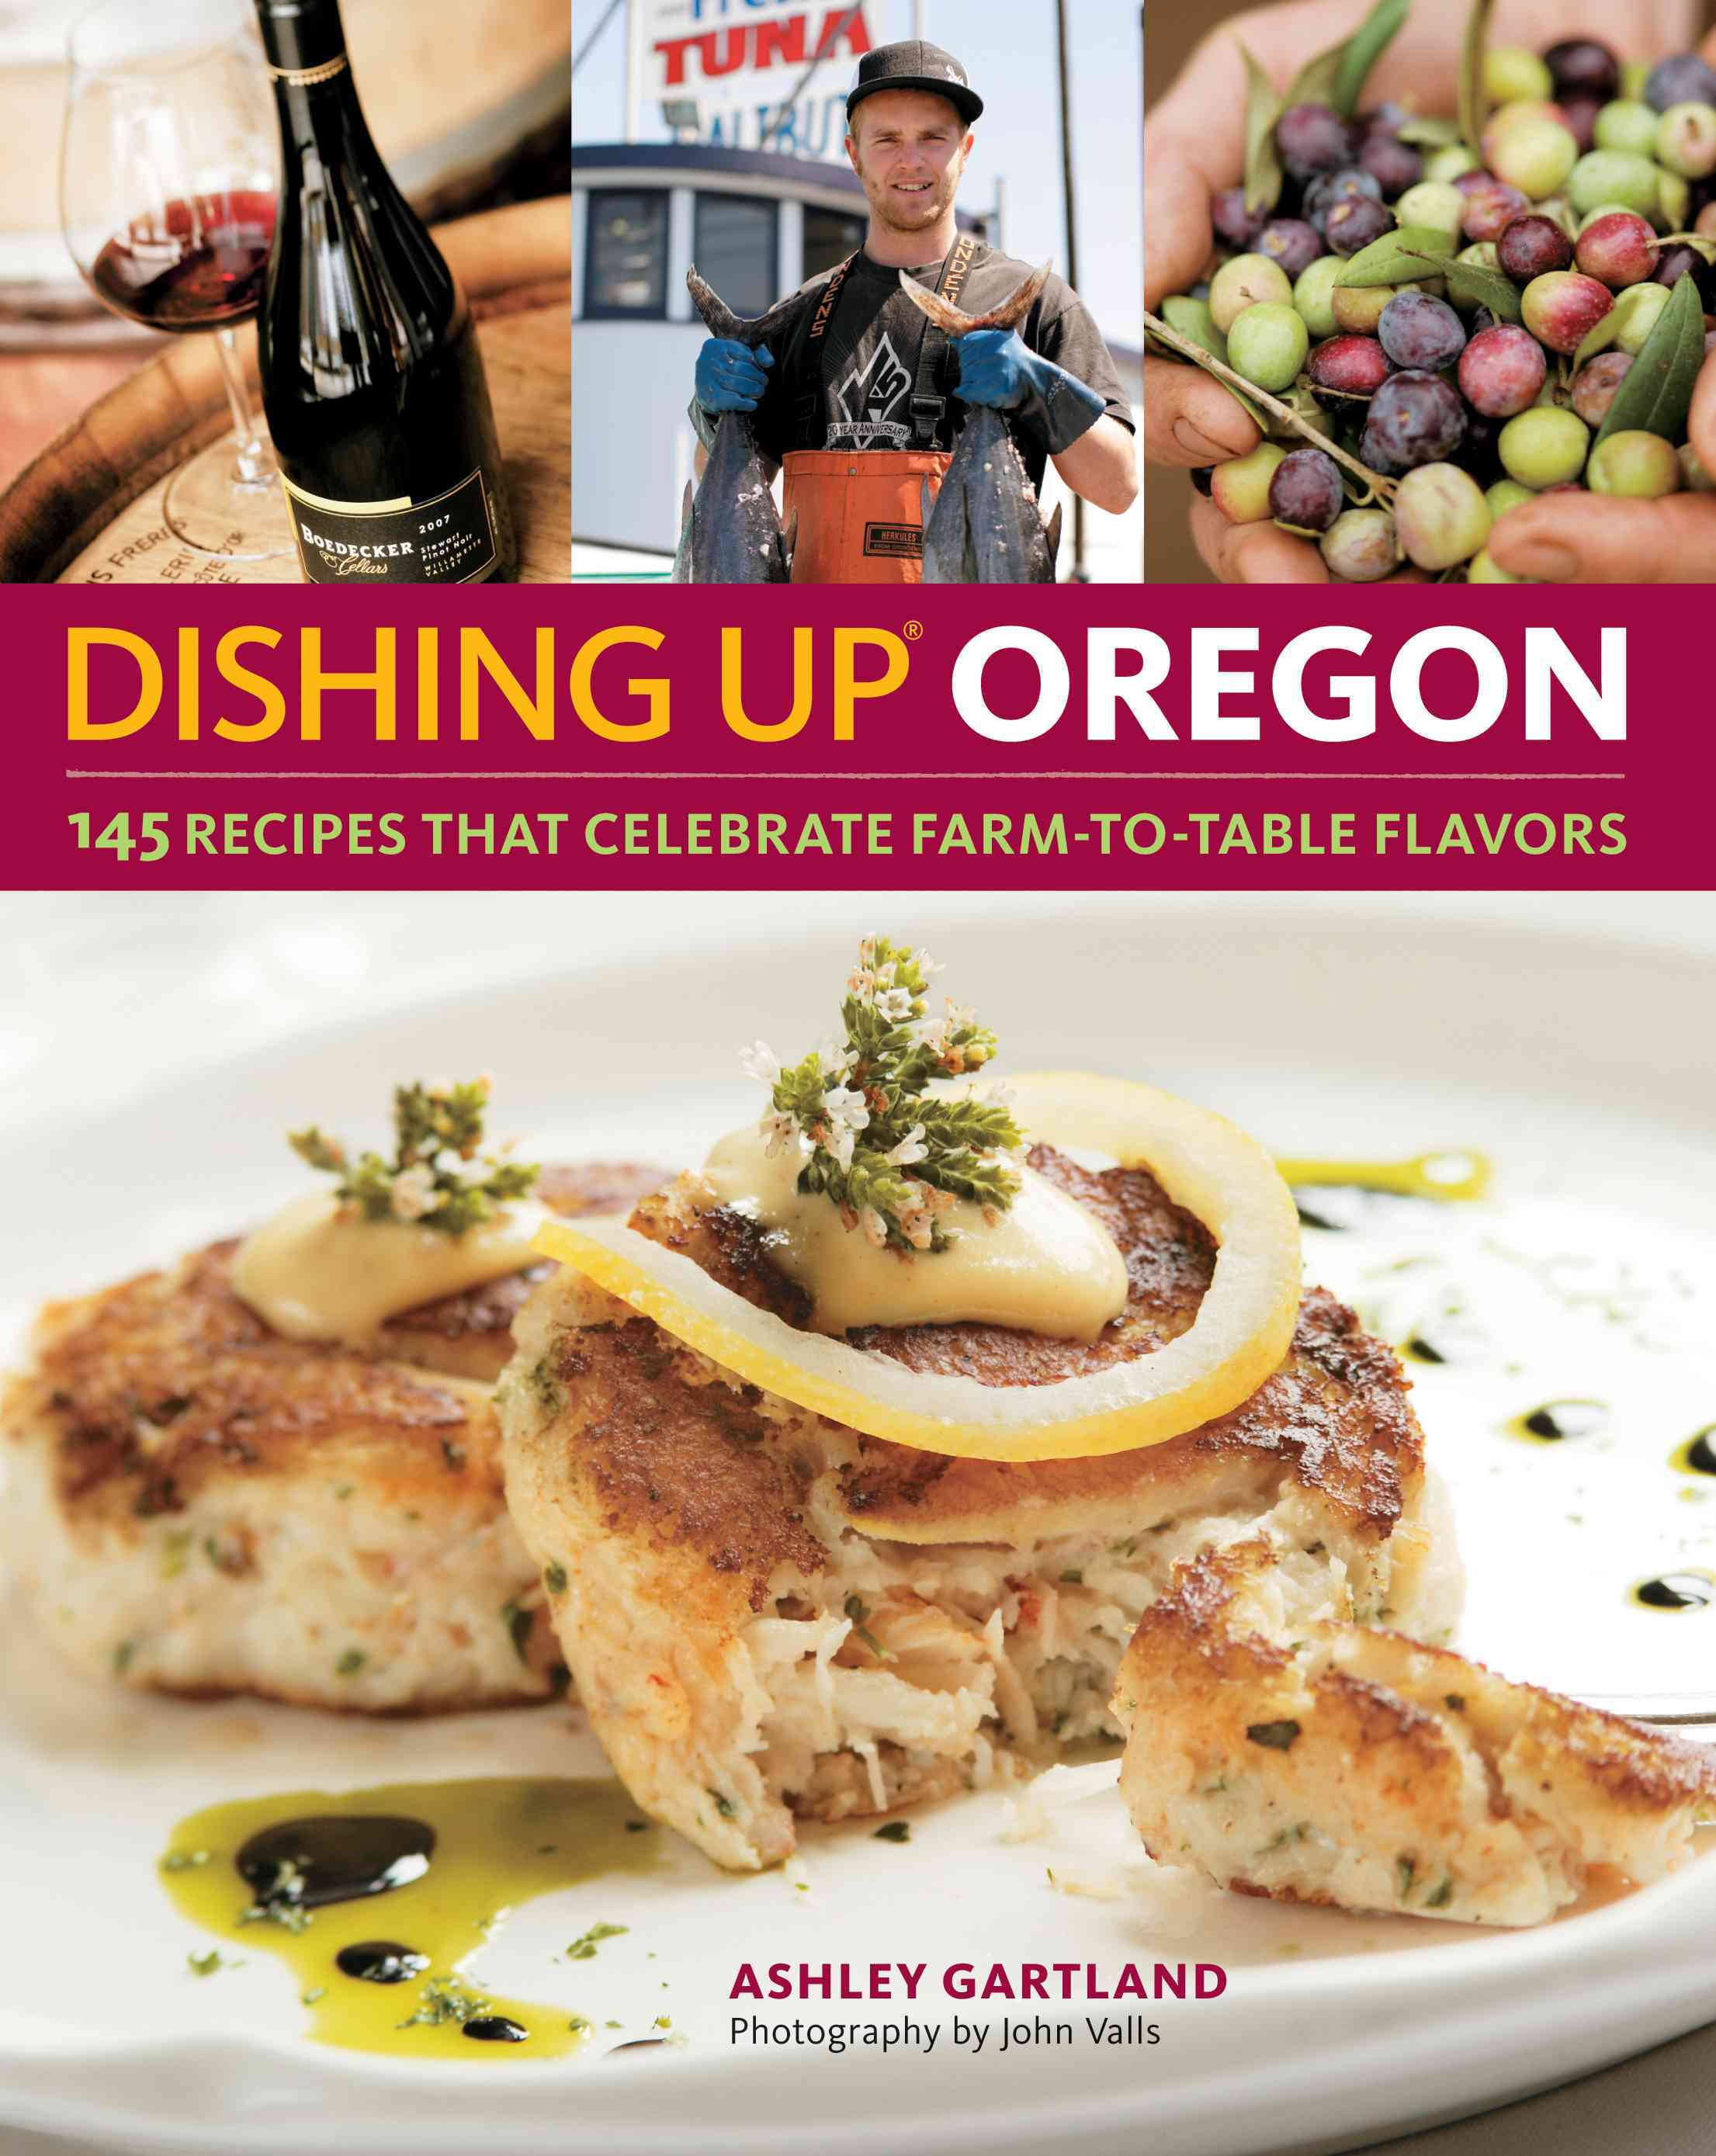 Dishing Up Oregon: 145 Recipes That Celebrate Farm-to-Table Flavors (Paperback)